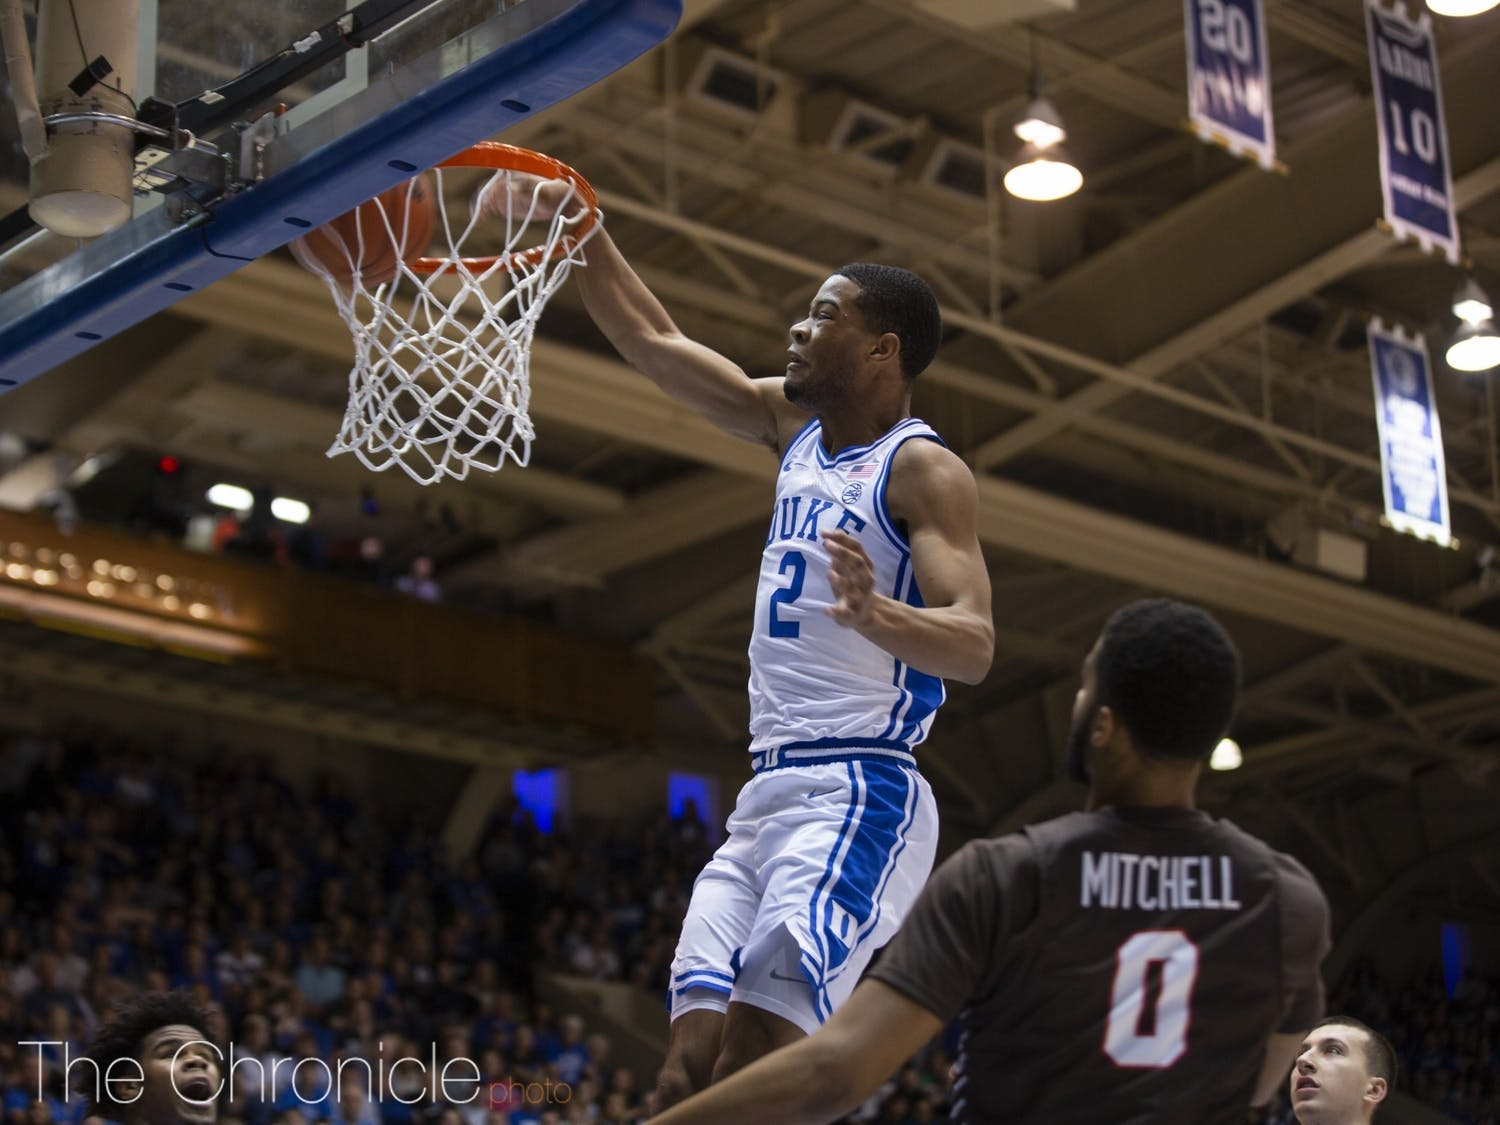 Former Blue Devil Cassius Stanley will get to show off his showstopping dunks in the NBA Slam Dunk contest March 7.